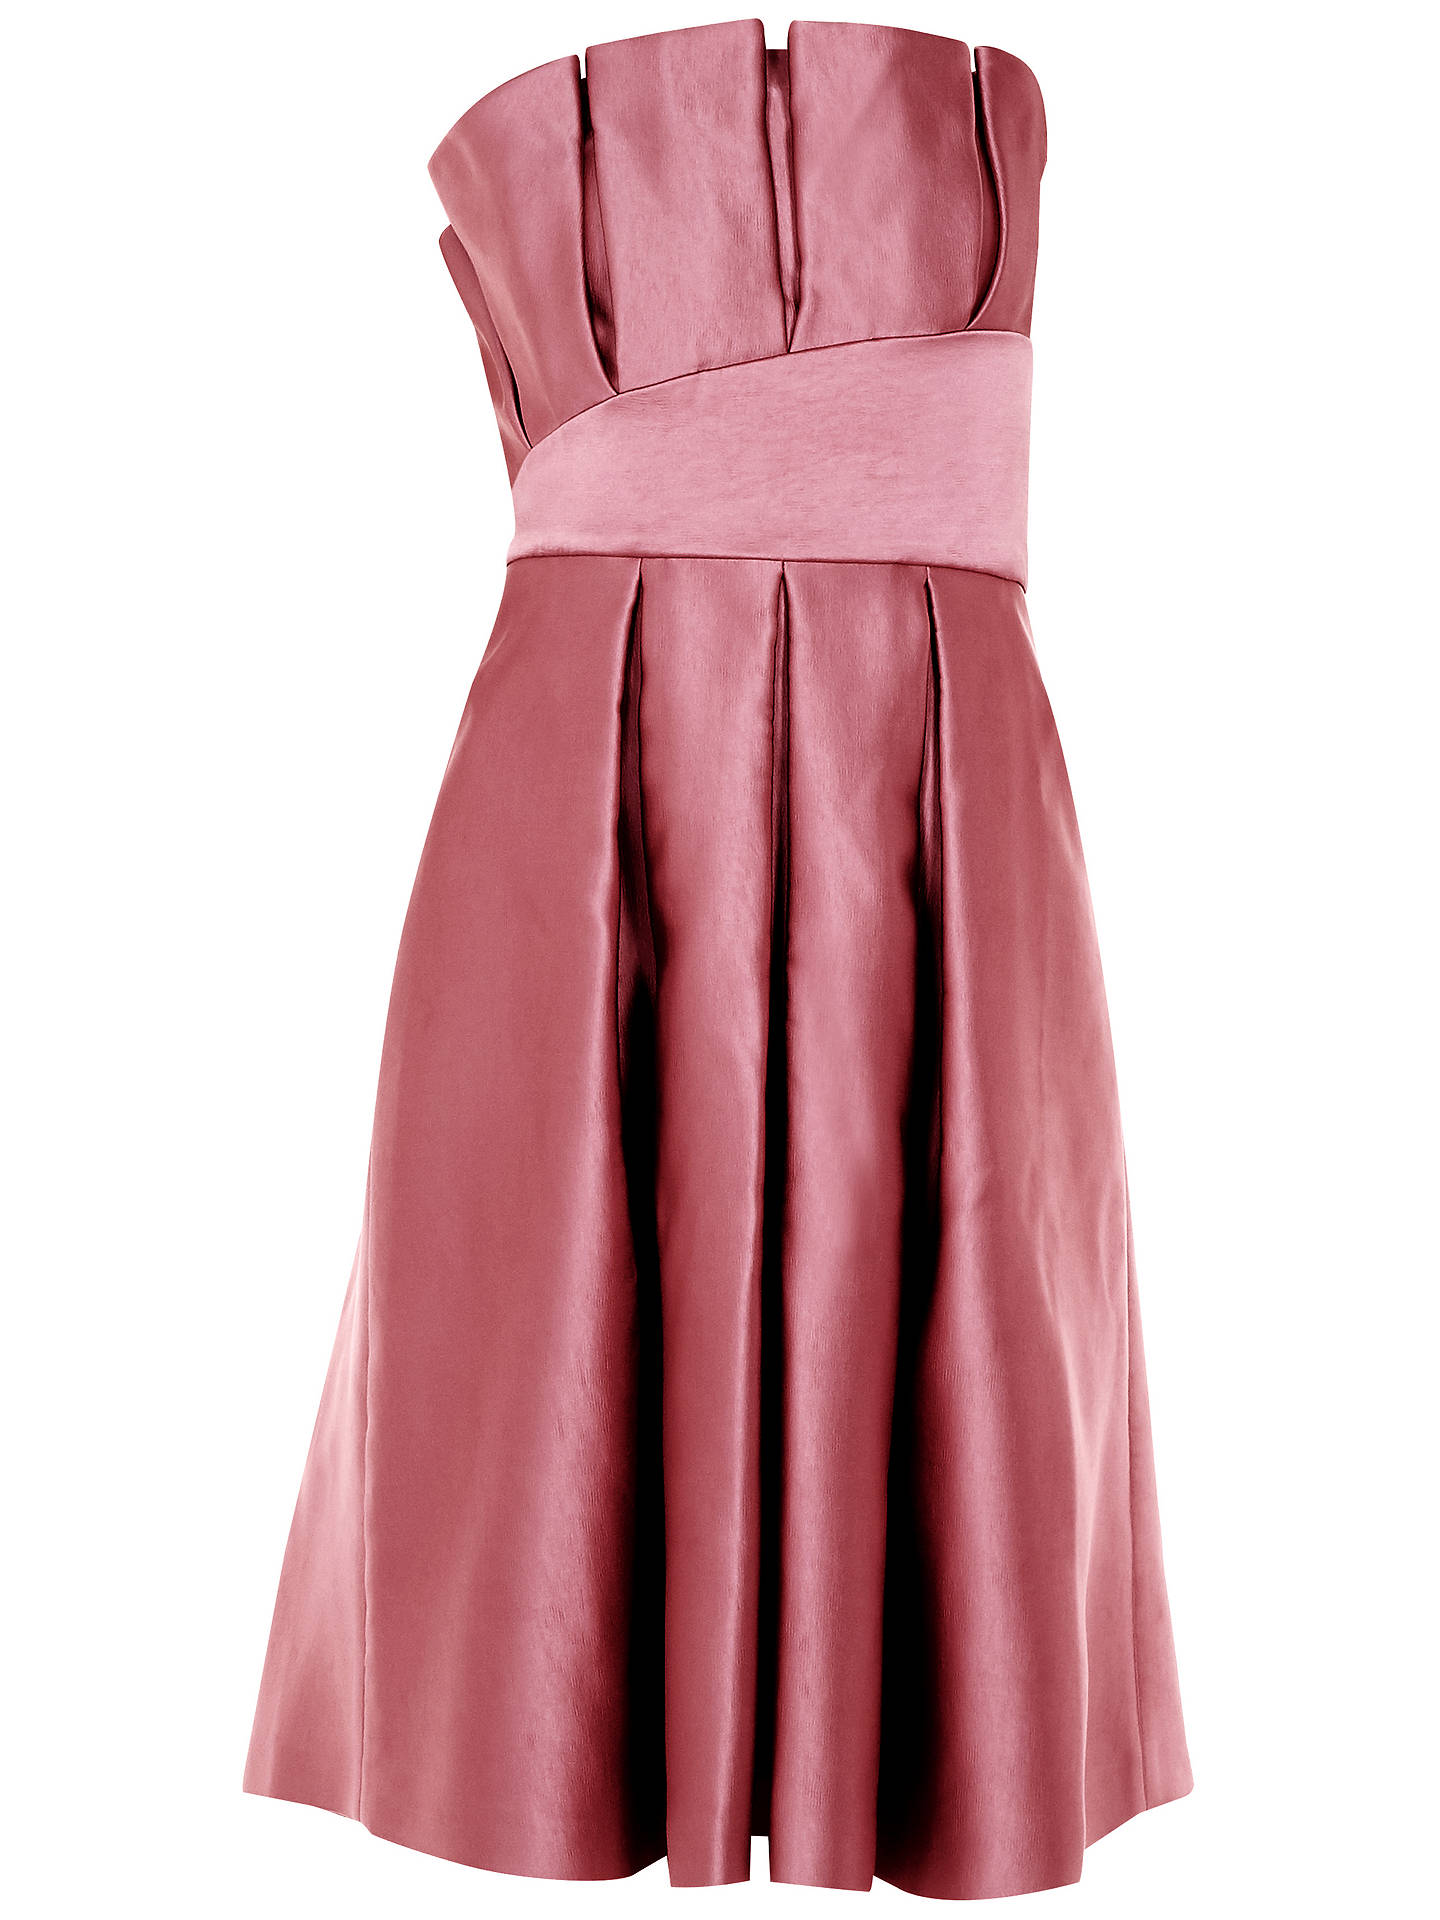 Buy Ted Baker Pippaa Pleated Strapless Dress, Pink Coral, 0 Online at johnlewis.com